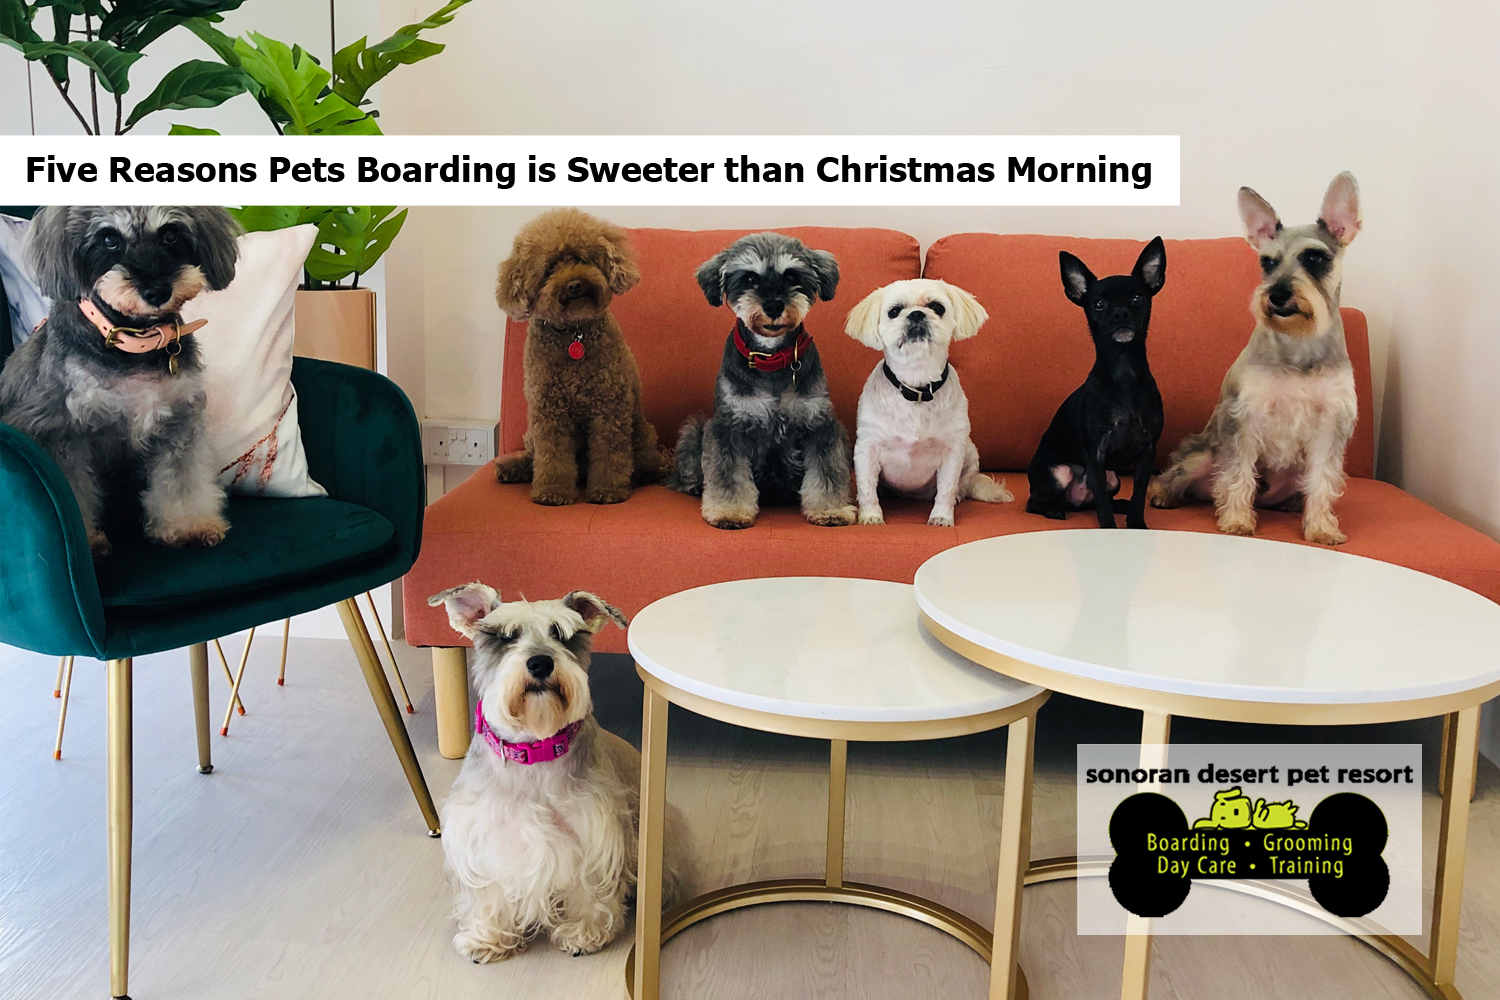 Five Reasons Pets Boarding is Sweeter than Christmas Morning